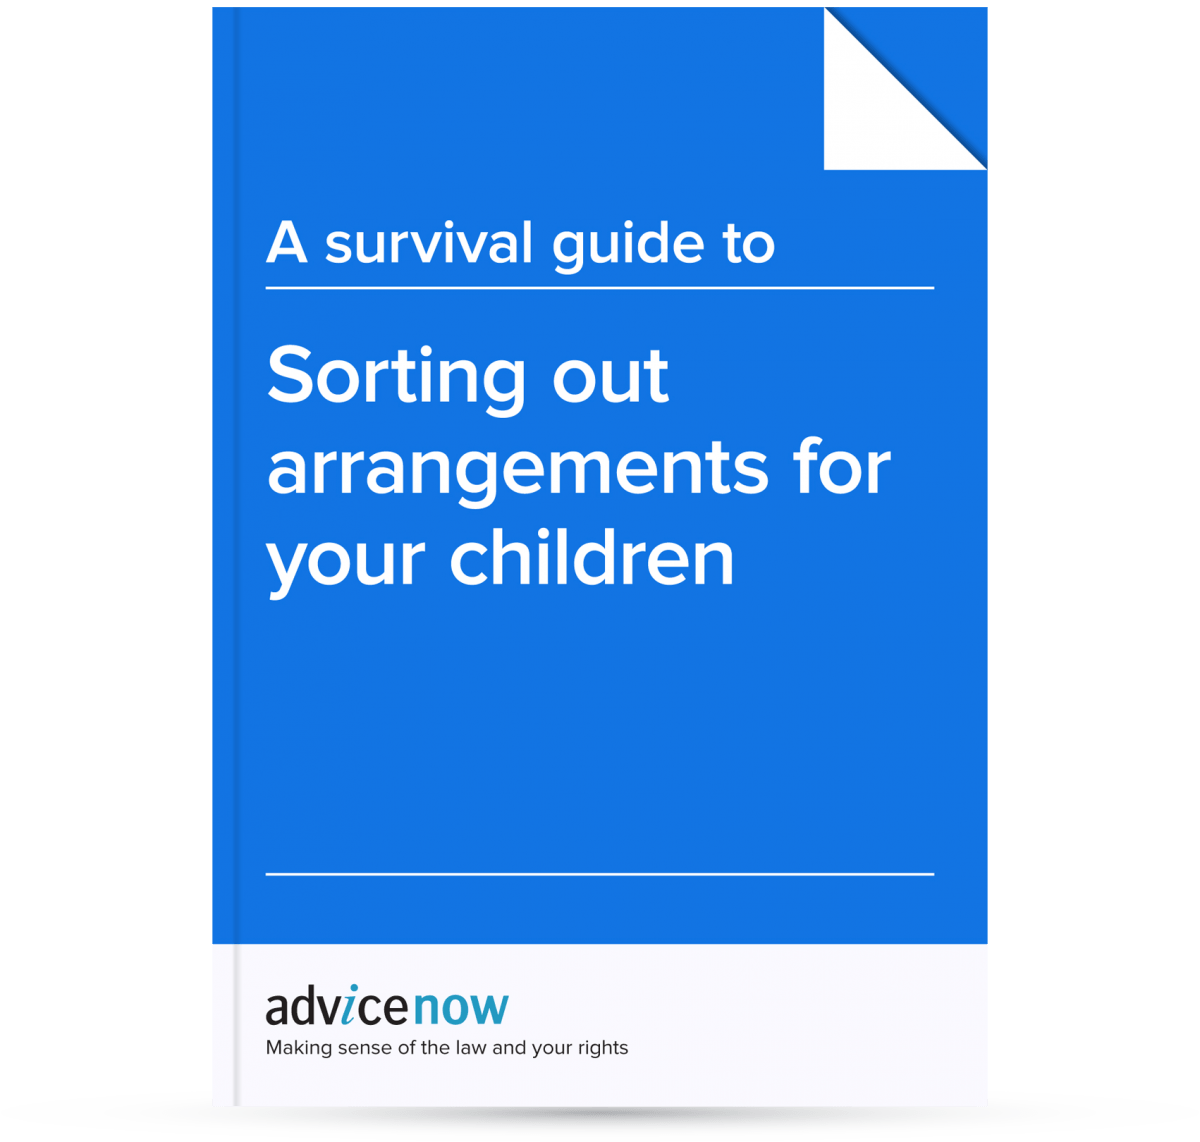 guide to sorting out arrangements for your children